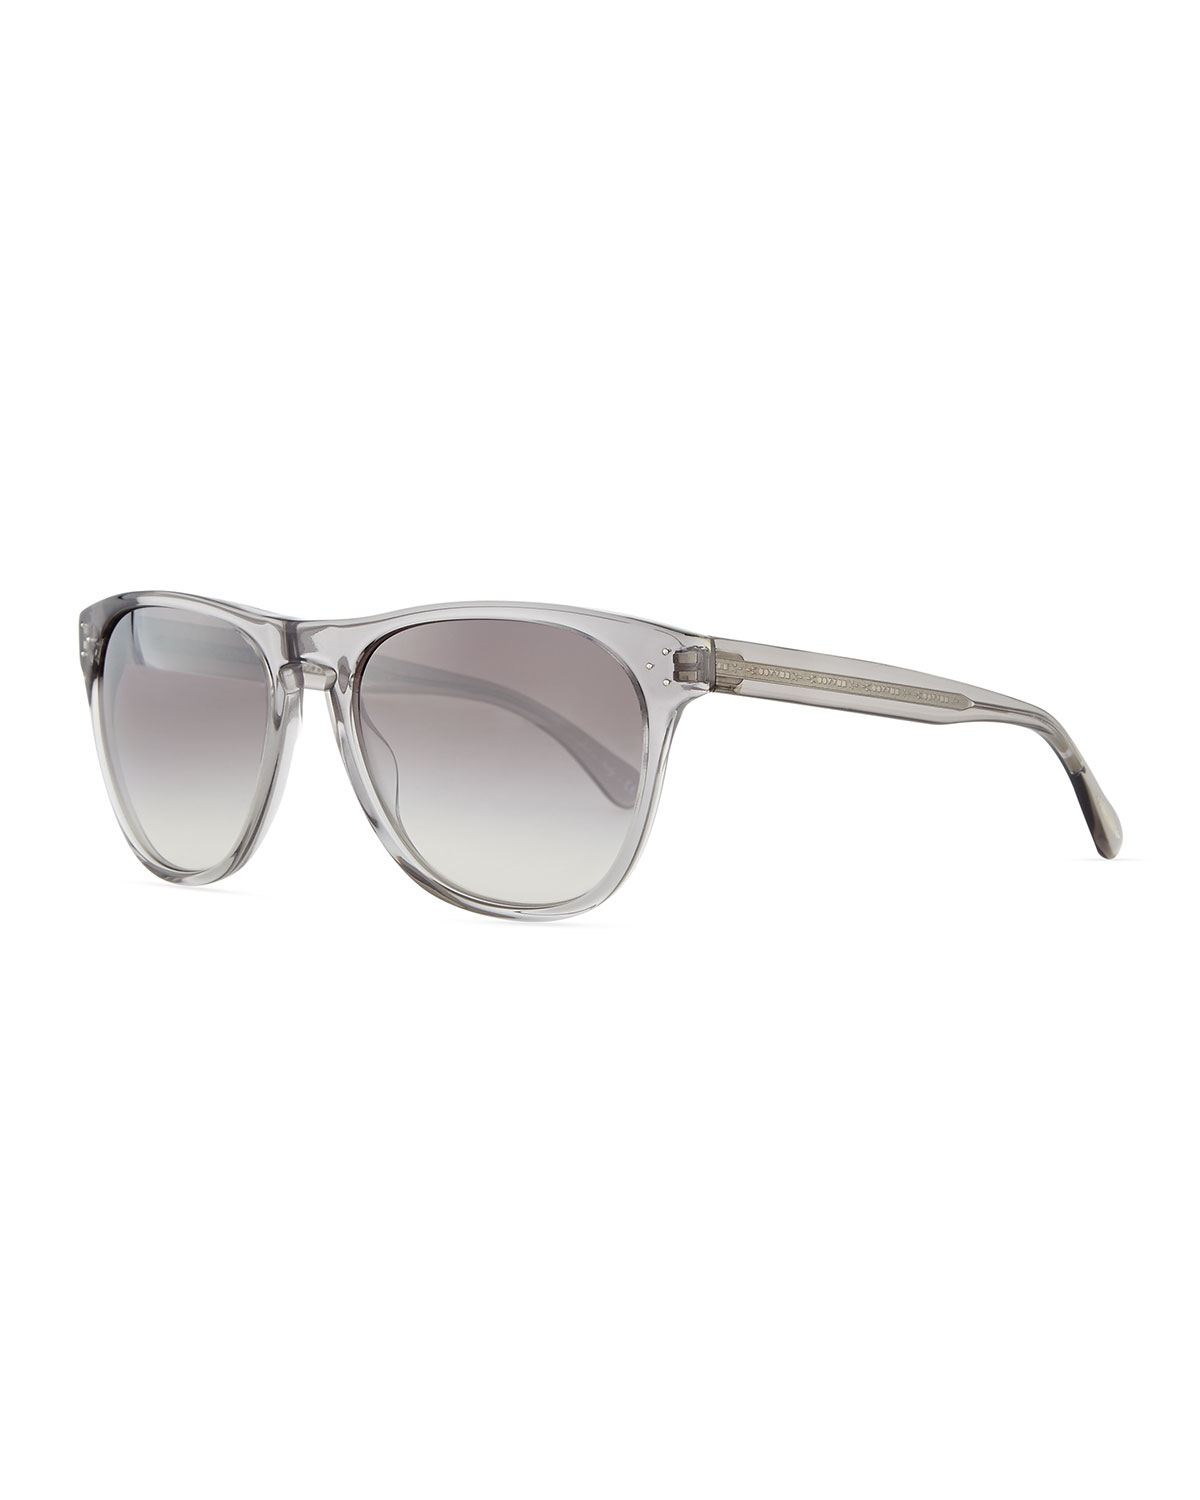 cd309ab208 Lyst - Oliver Peoples Daddy B Men s Clear Acetate Sunglasses in ...